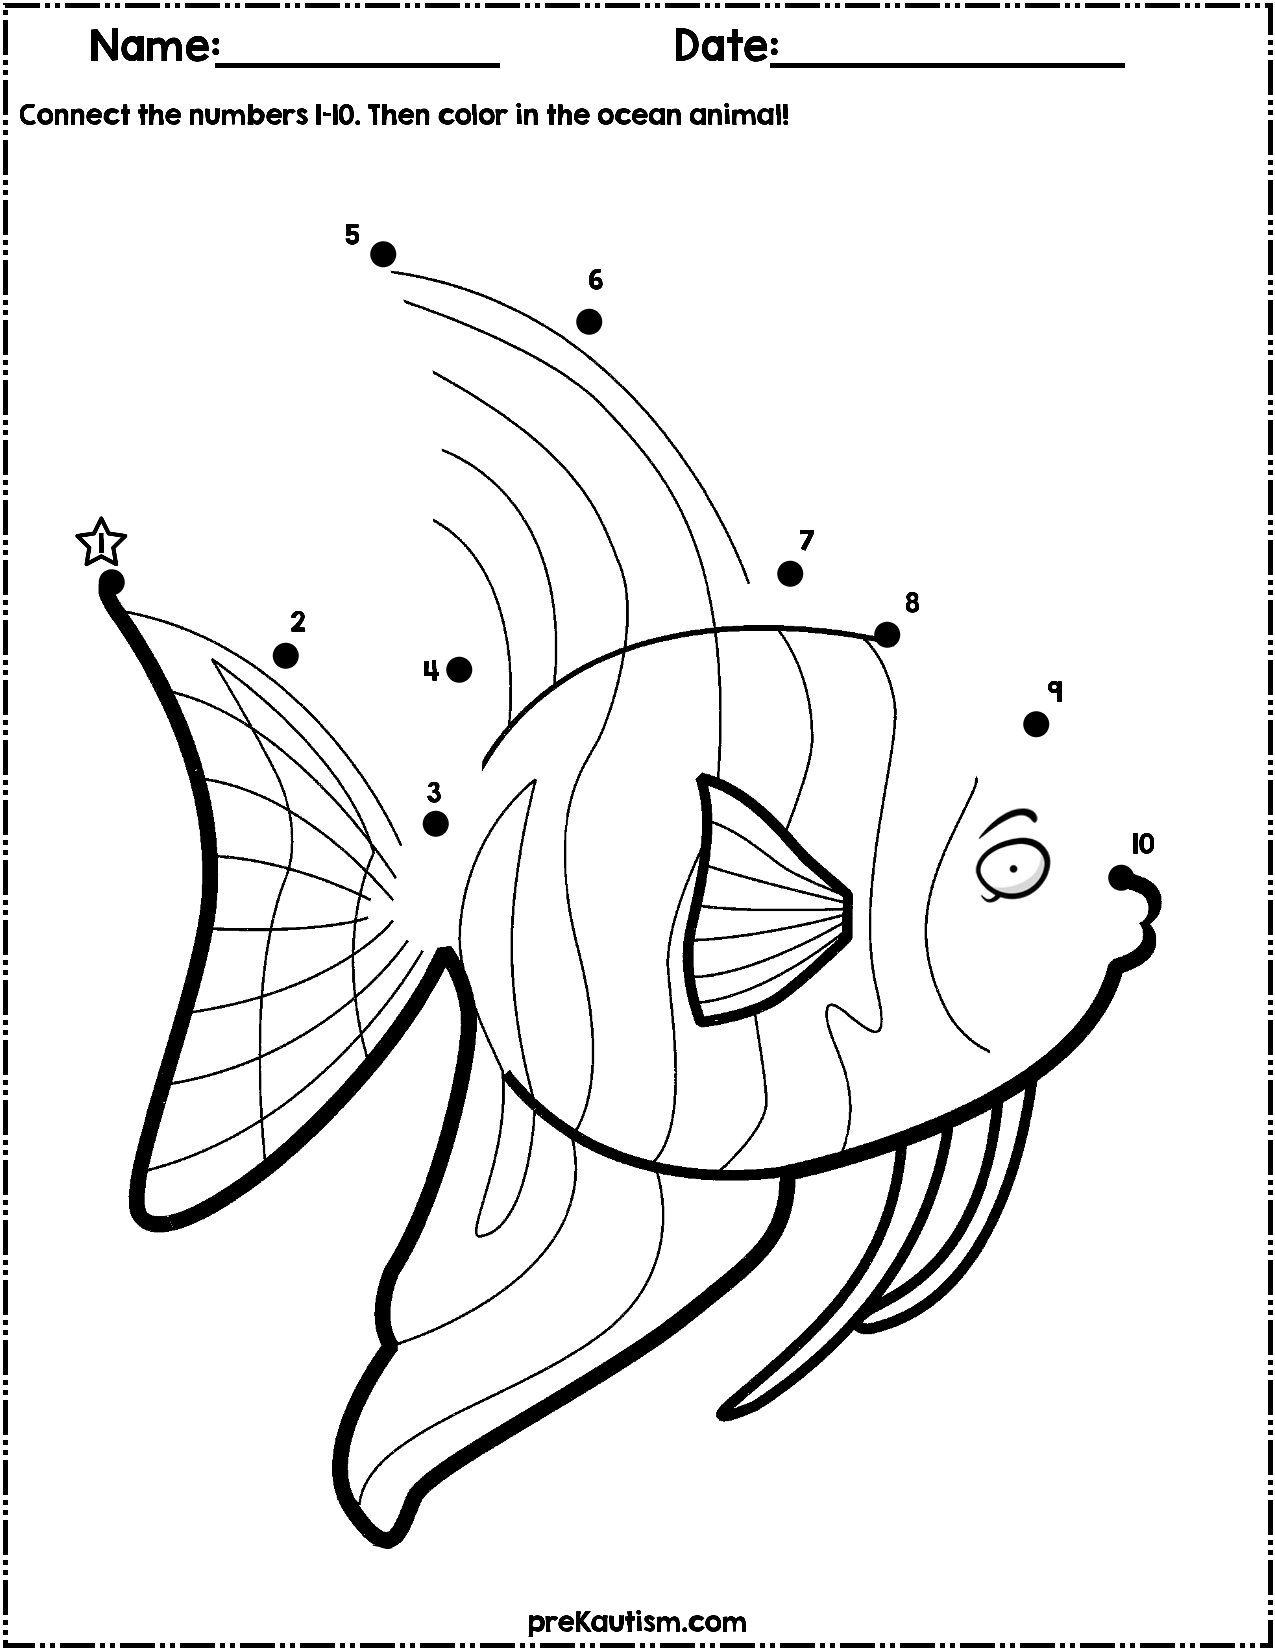 Ocean Animals Dot To Dot Worksheets | Numbers 1-10 | Dots ...